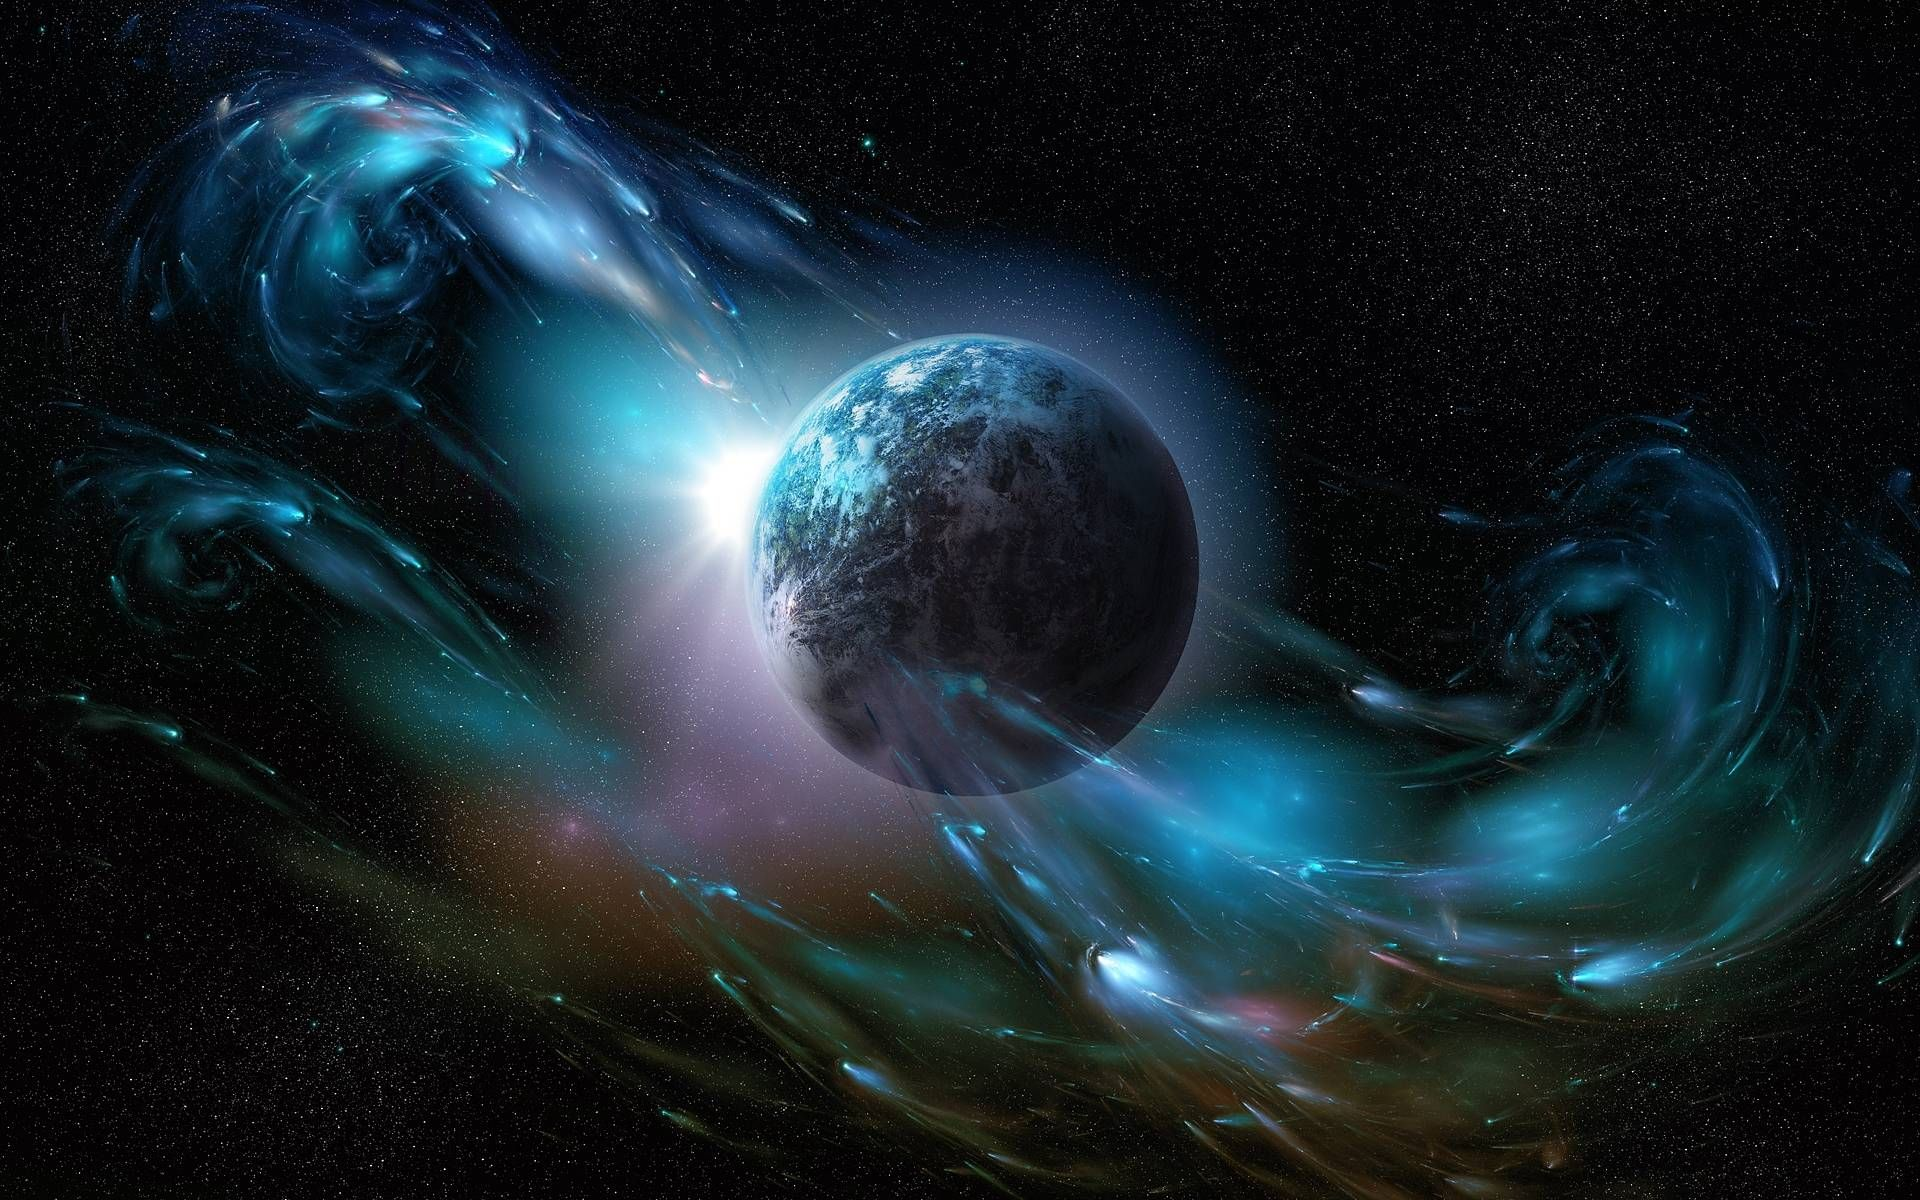 outer space desktop backgrounds - wallpaper cave | images wallpapers